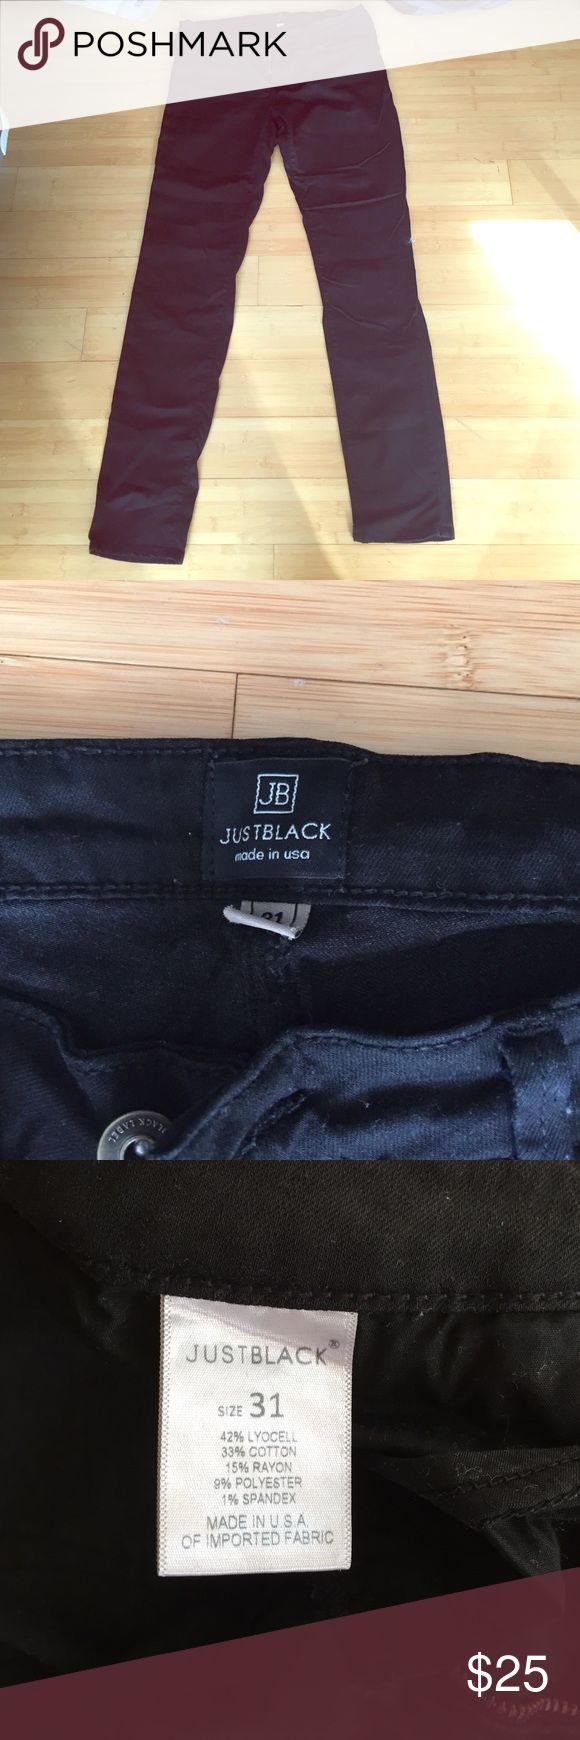 BLACK FRIDAY SALE STITCH FIX Just USA Black Jeans Size 31. SOME LIGHT WEAR ON THE BUTT- see photos. Mid rise, 32 inseam. Great jeans! Just USA  Jeans Skinny